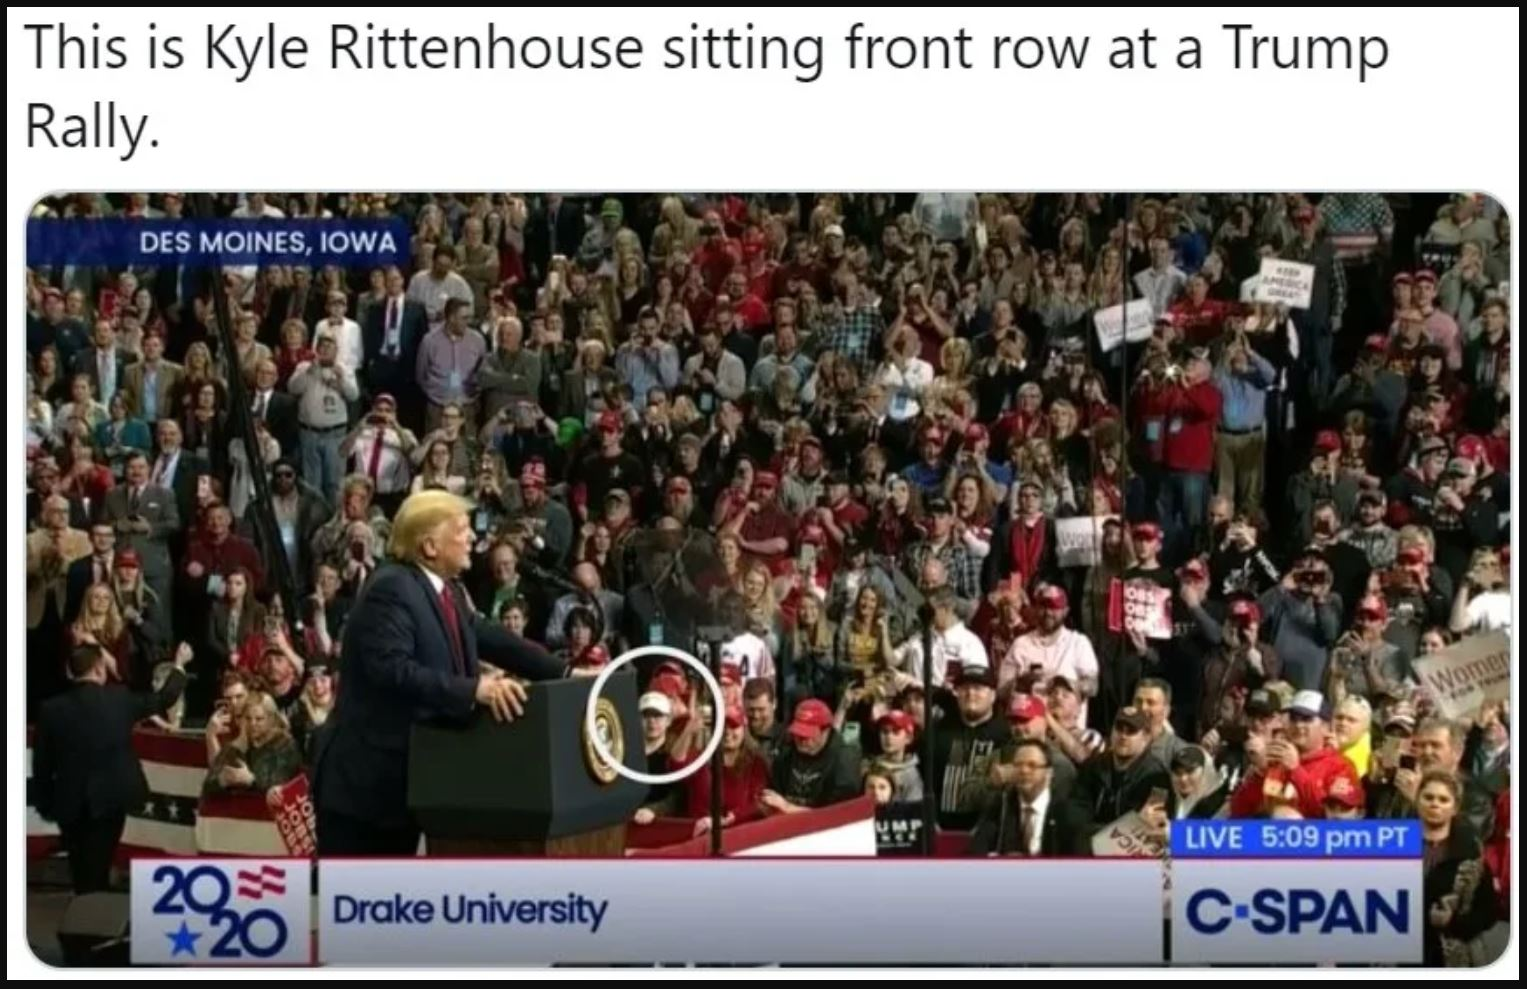 kyle rittenhouse at Trump Rally